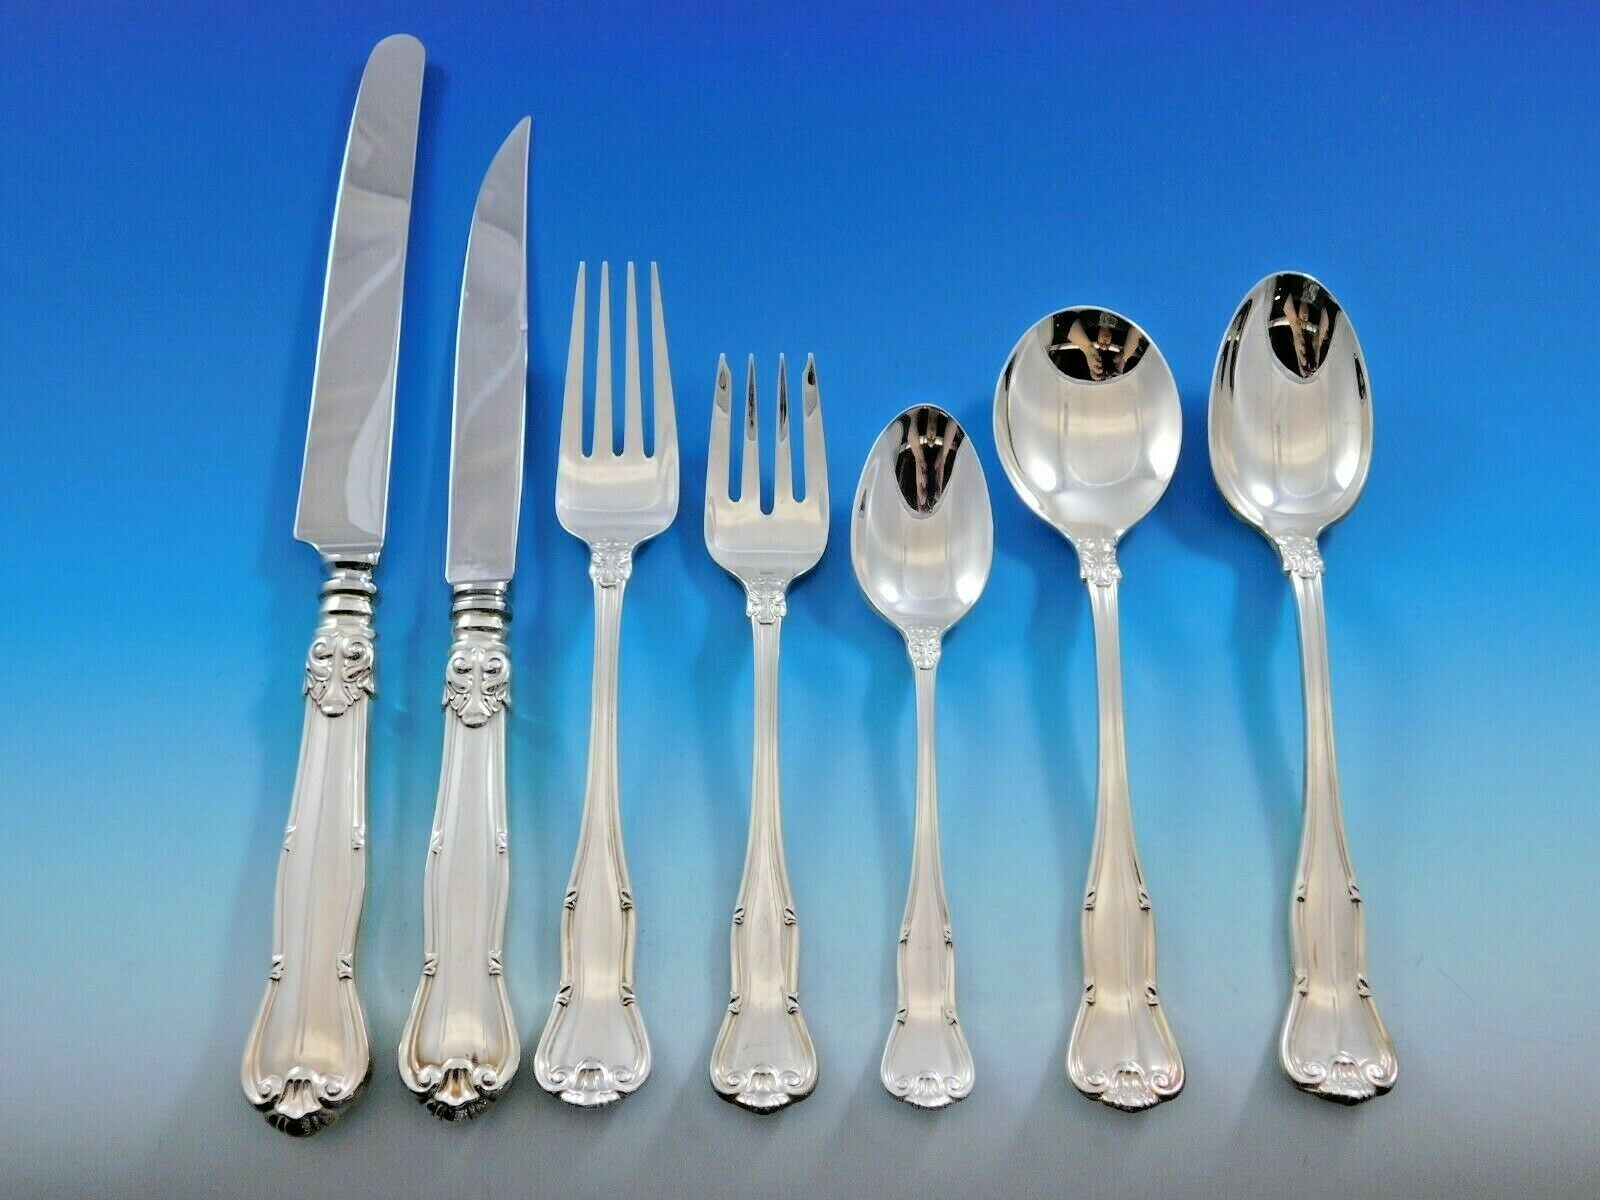 Primary image for Provence by Tiffany & Co. Sterling Silver Flatware Set 8 Service 56 pcs Dinner